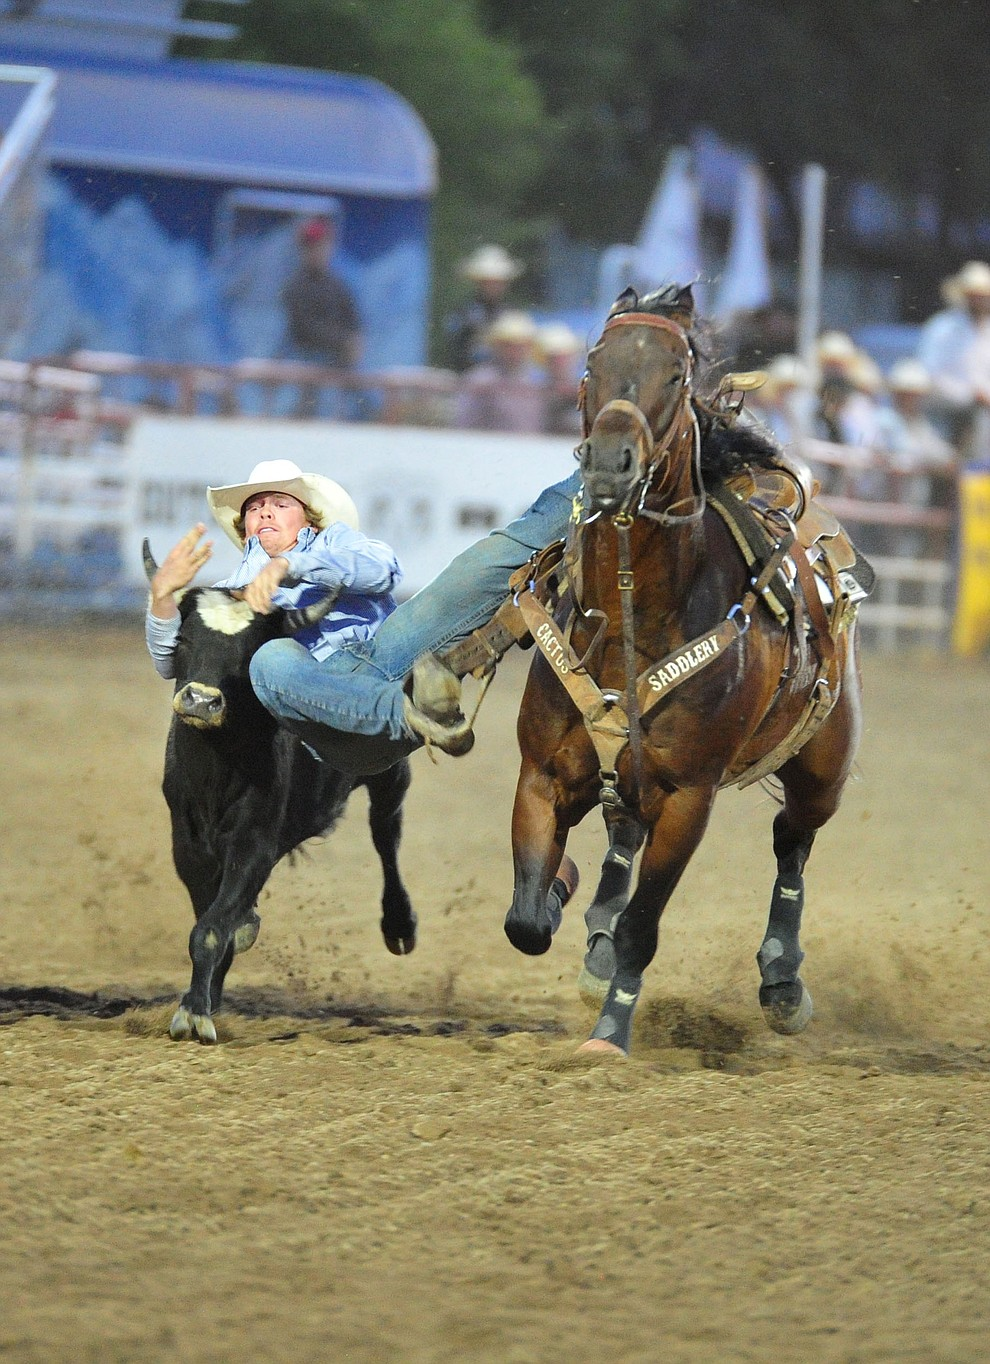 Tucker Allen has a 9.6 second run in the steer wrestling during the 5th performance of the Prescott Frontier Days Rodeo at the Prescott Rodeo grounds Friday July 5, 2019.  (Les Stukenberg/Courier)